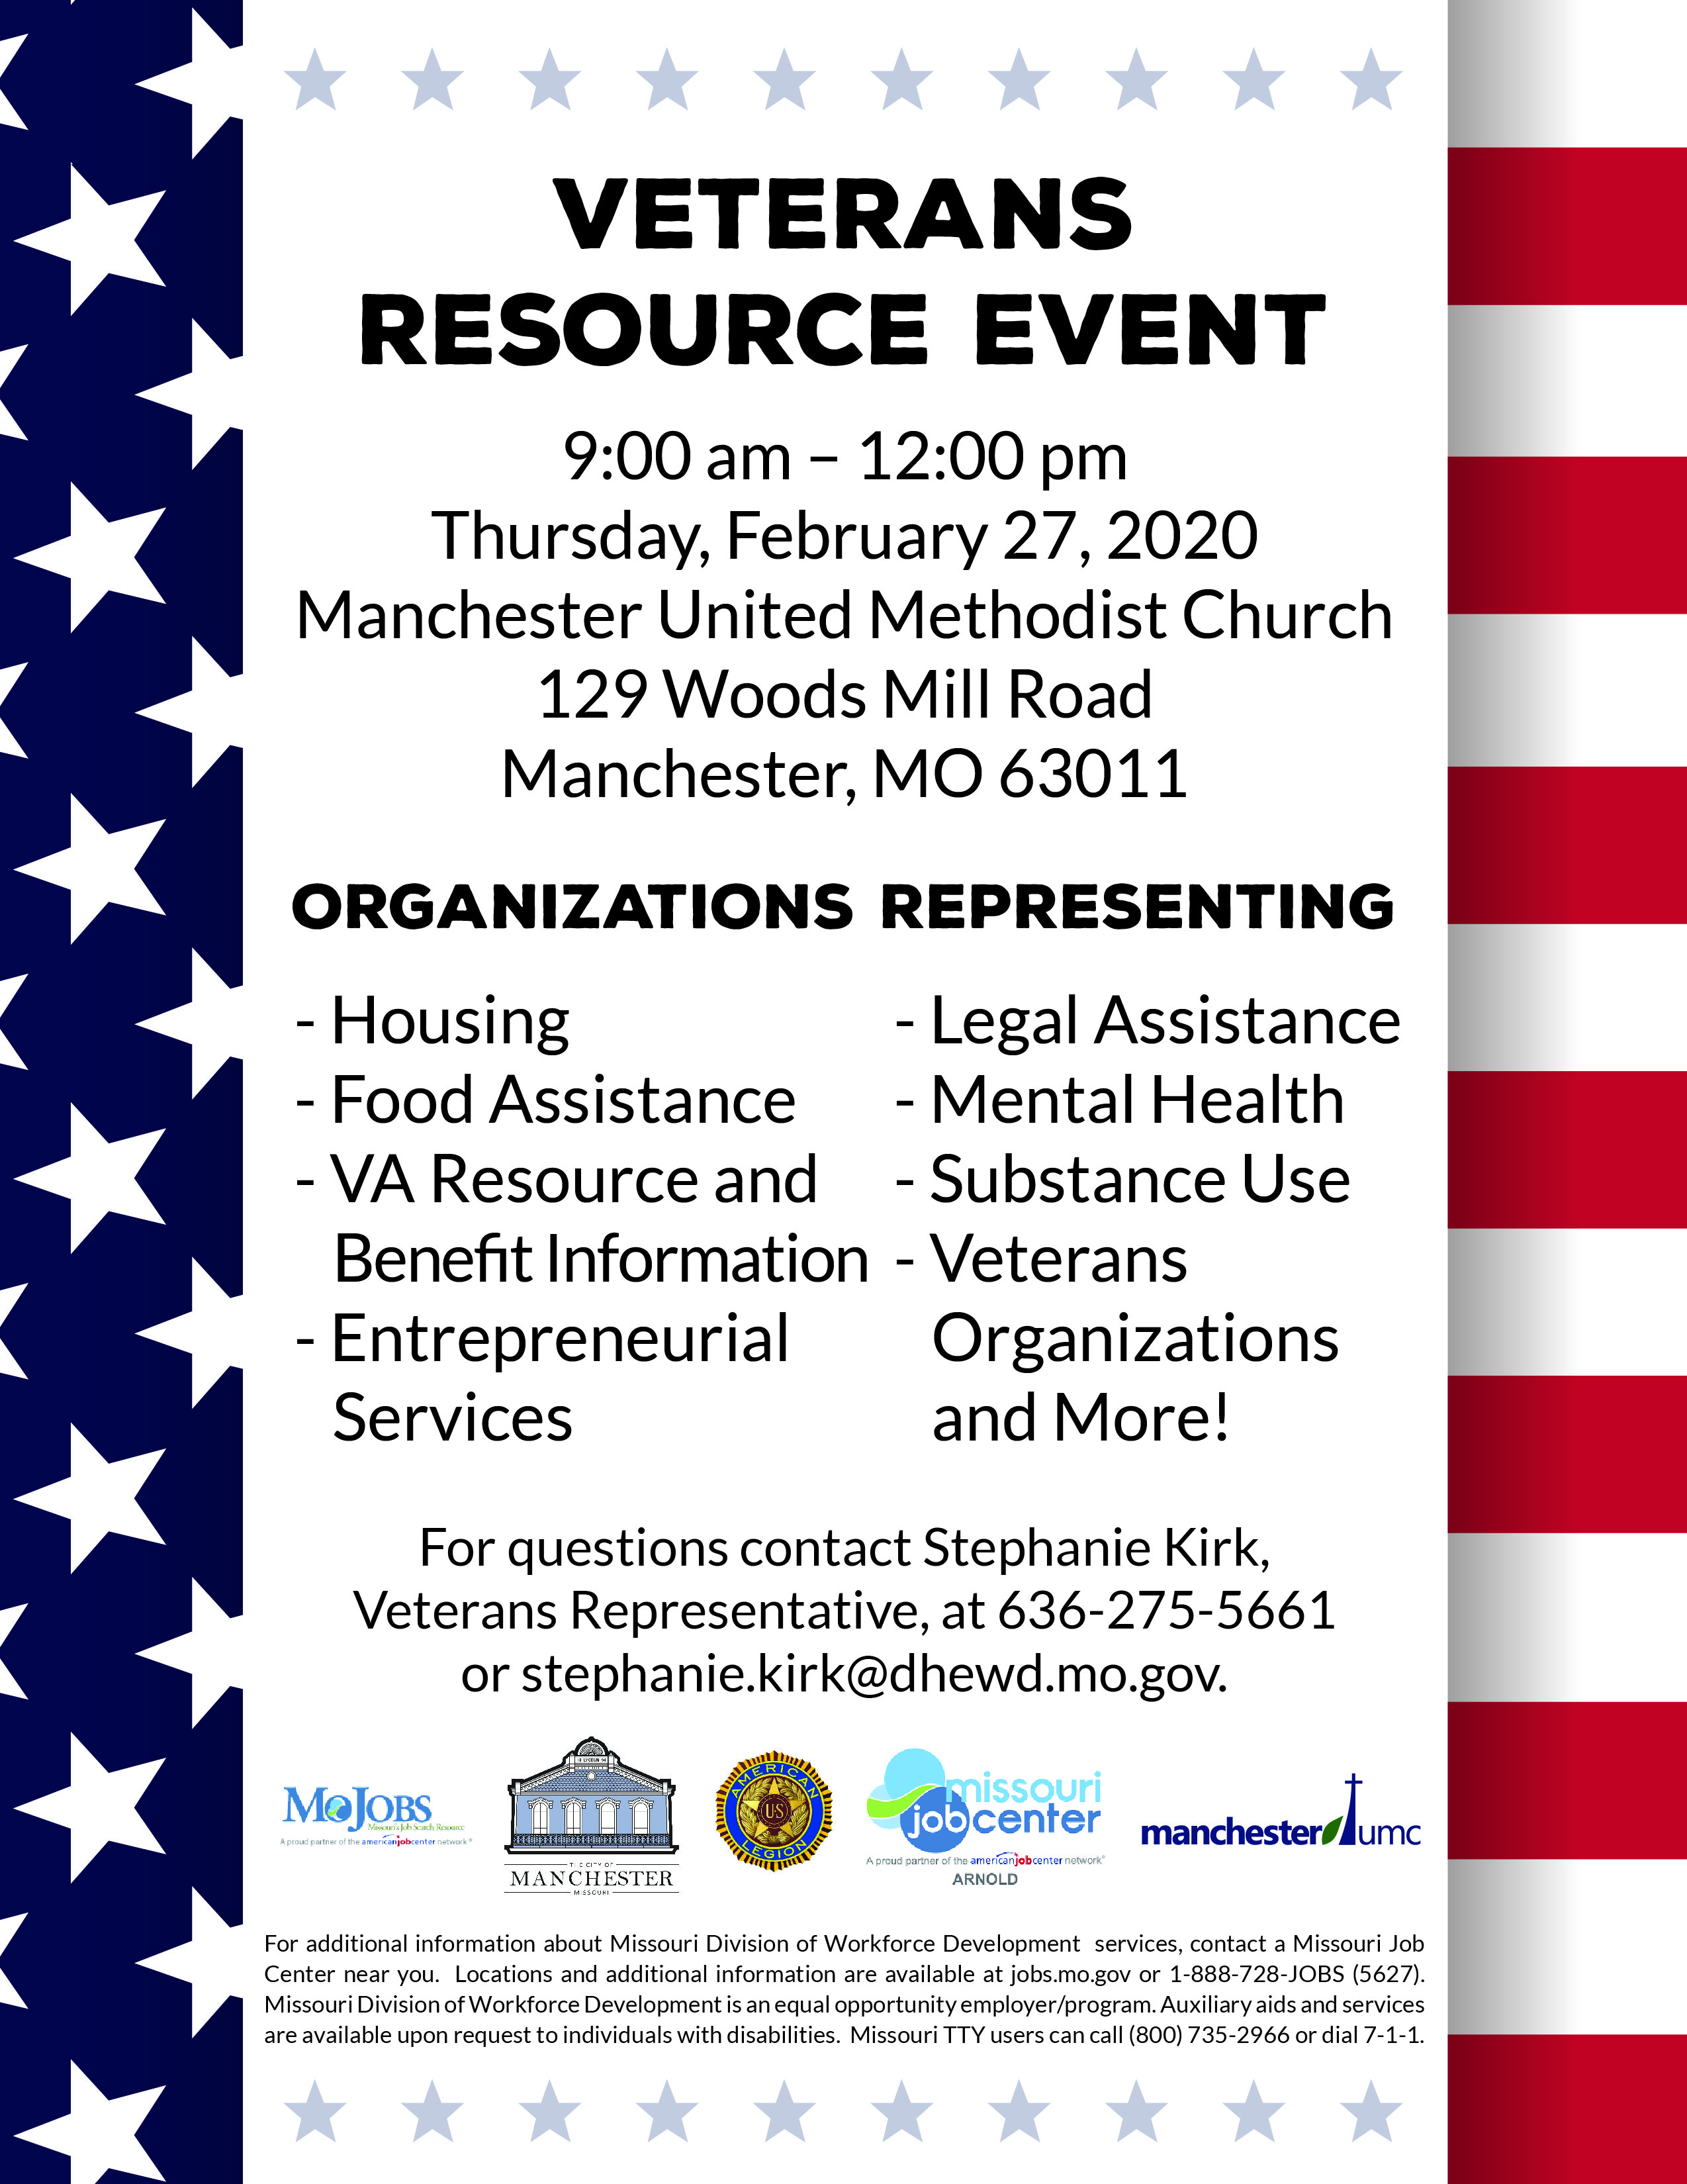 Veterans Resource Event